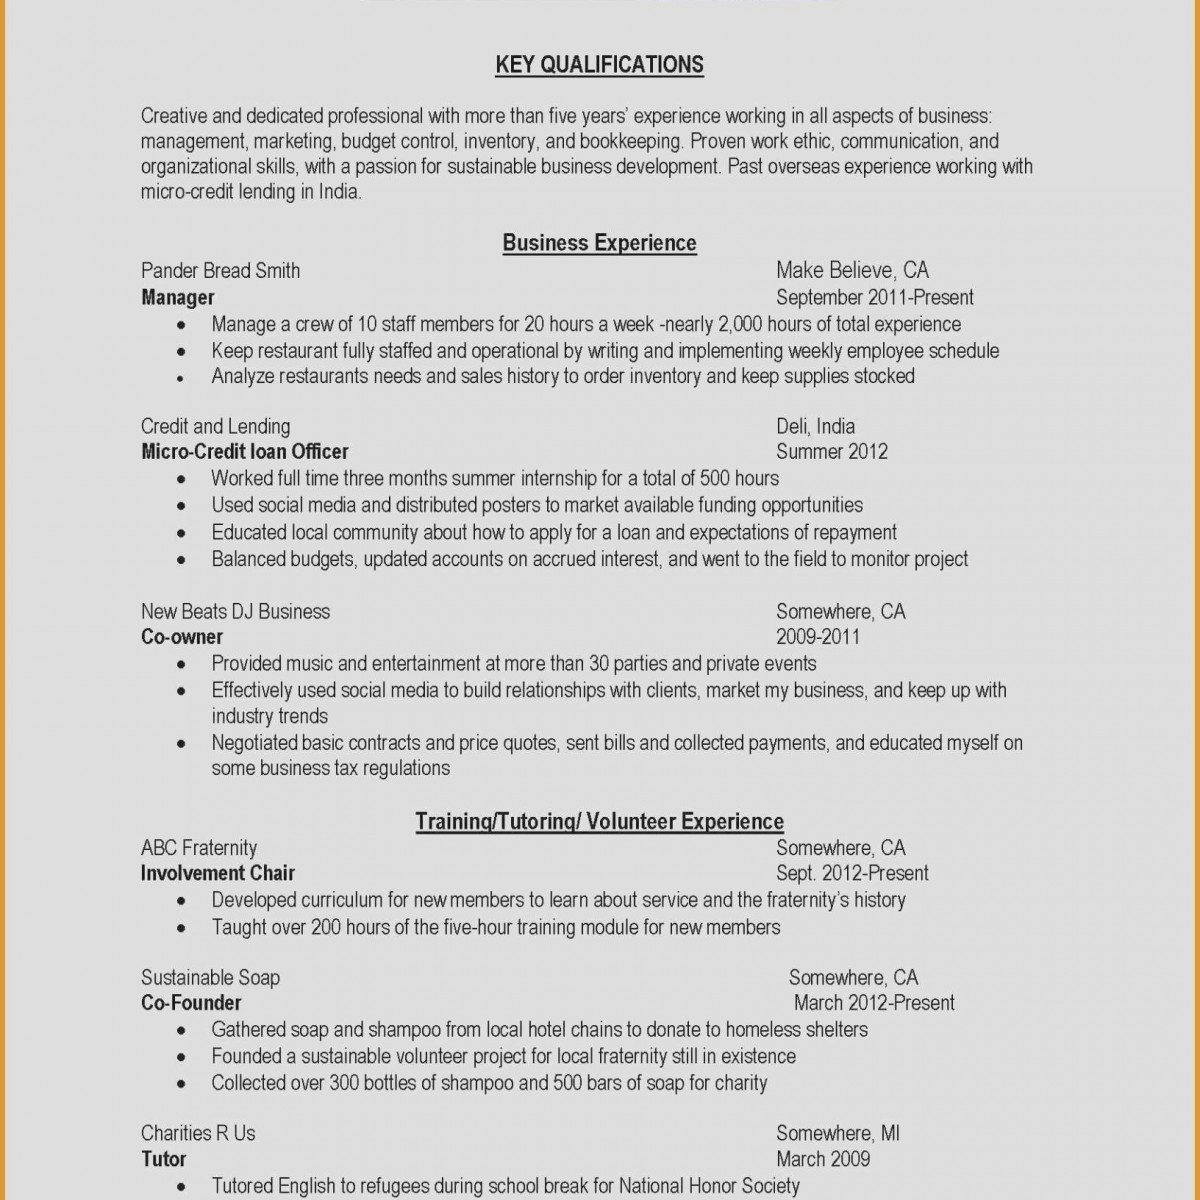 Visually Appealing Resume - Visually Appealing Resume Best A Resume is New Doing A Resume